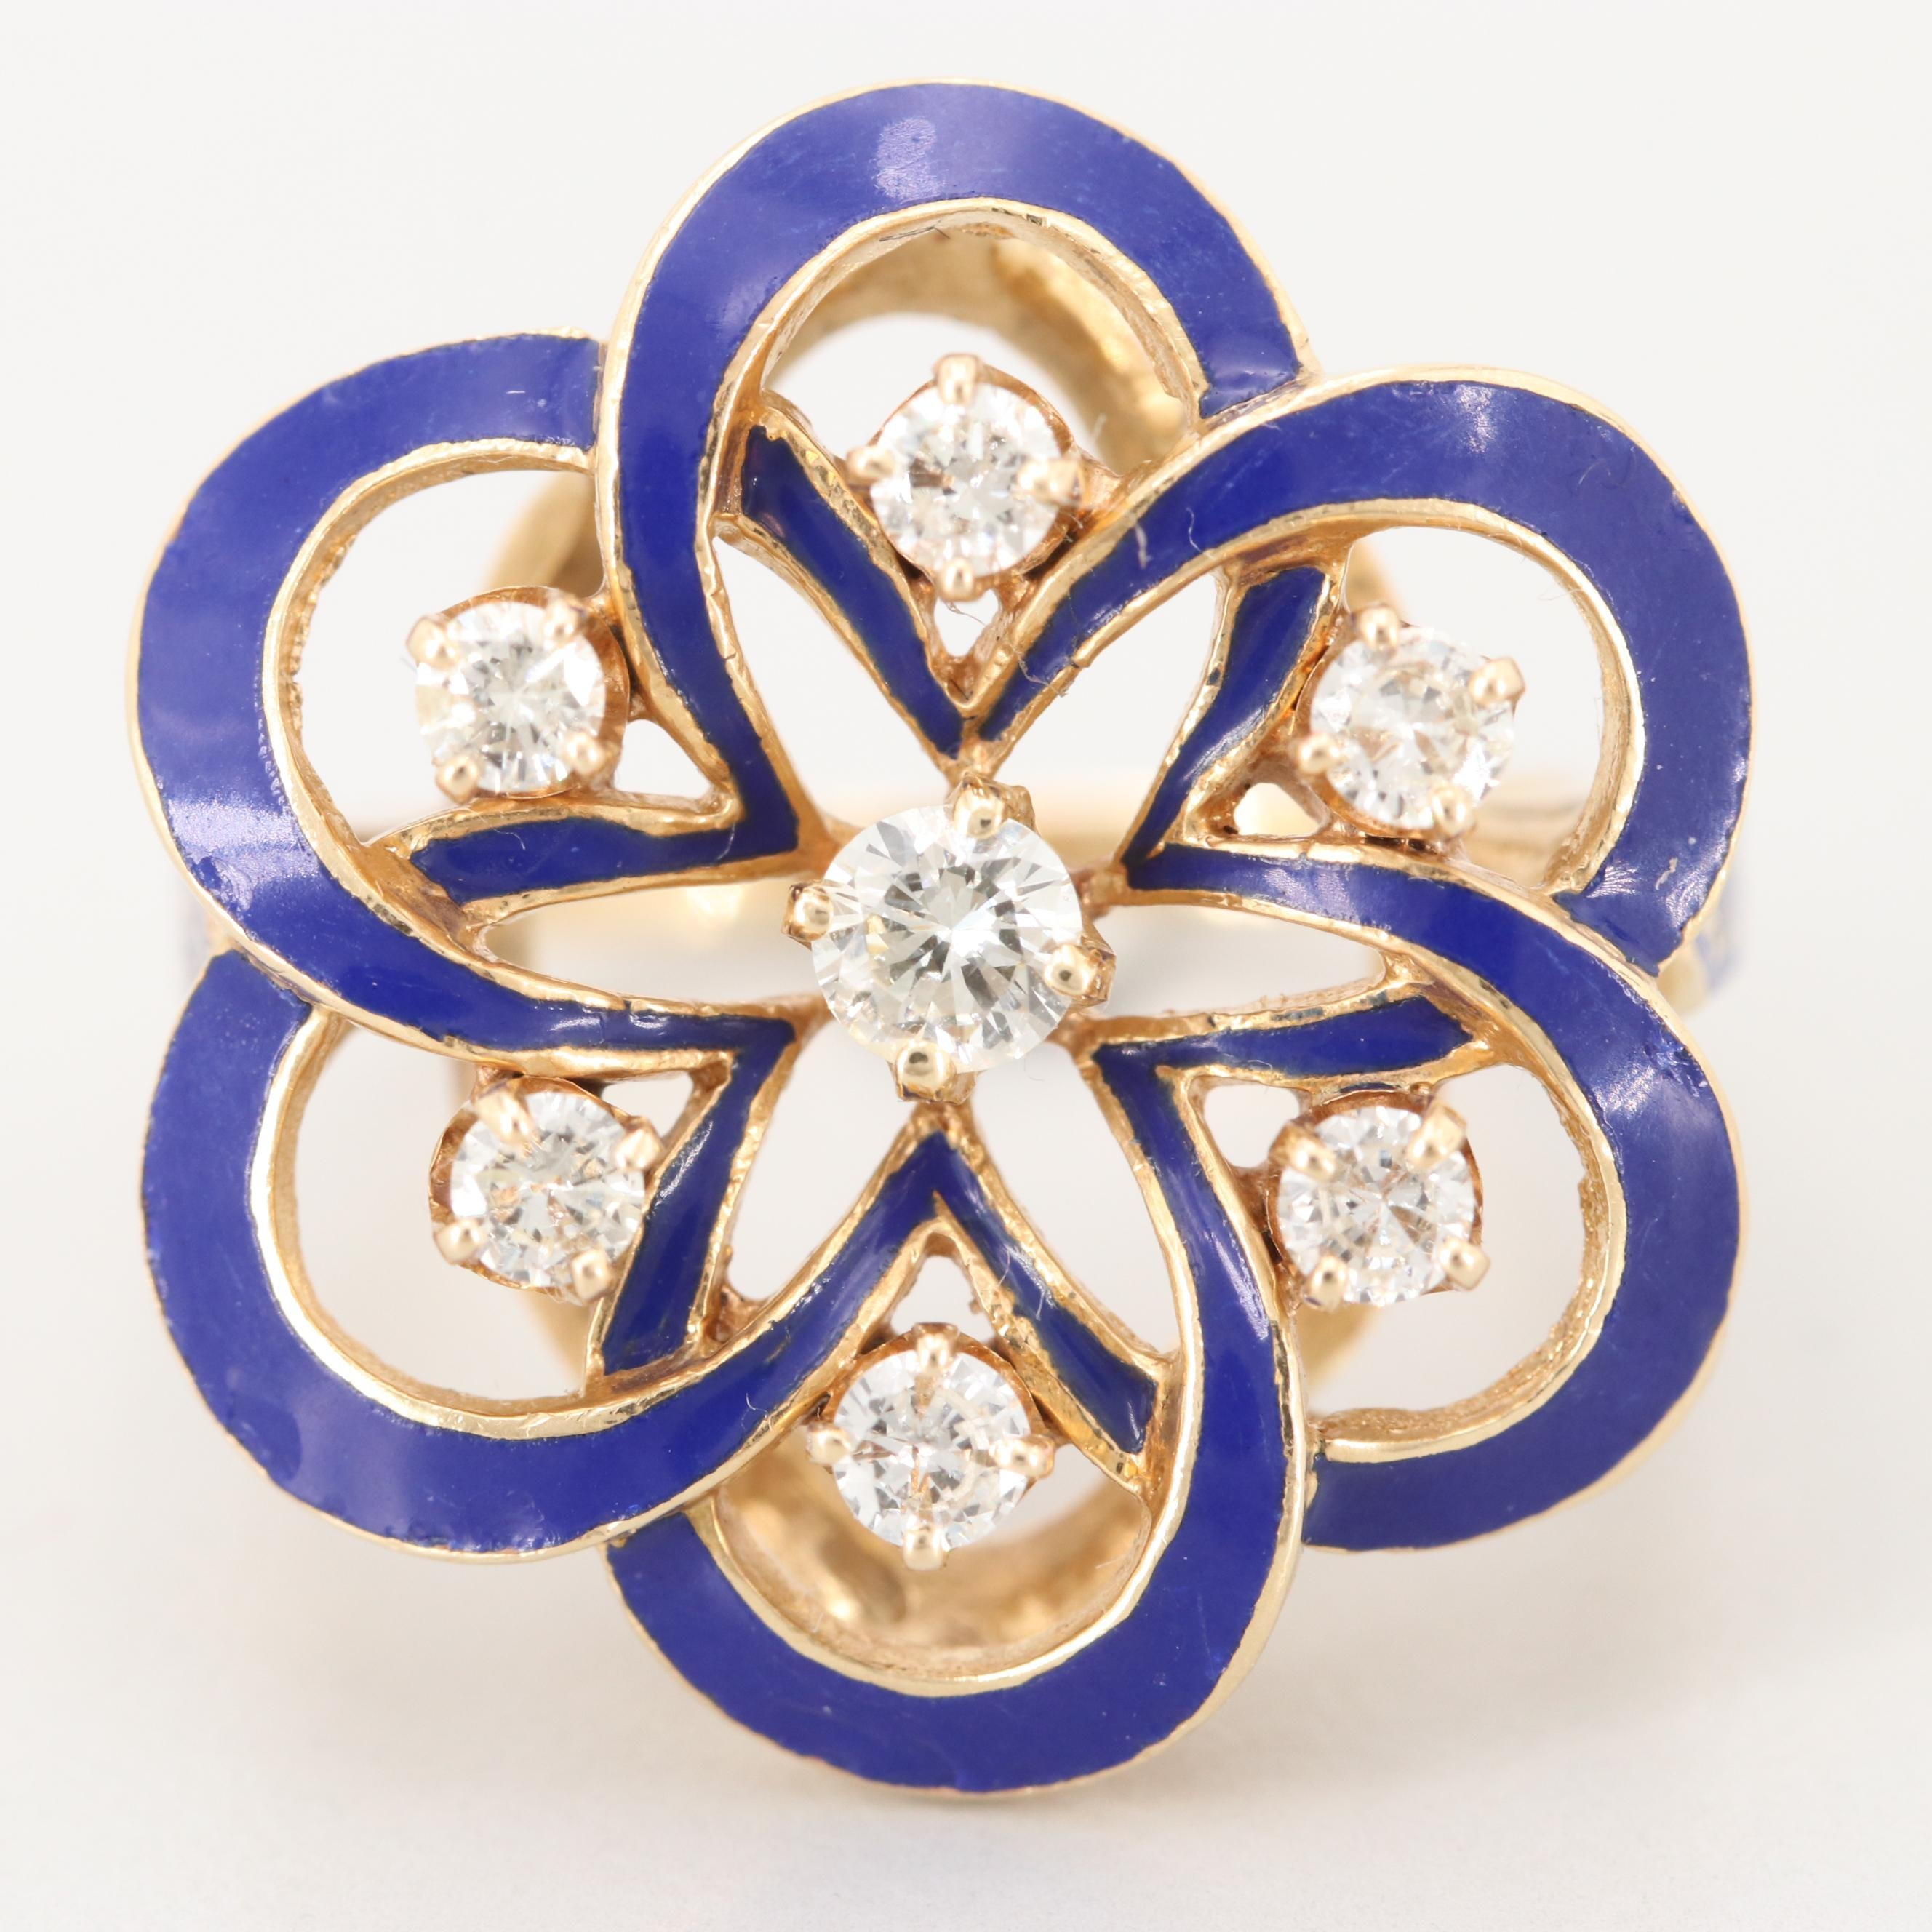 Vintage 14K Yellow Gold Diamond Ring with Champlevé Enamel